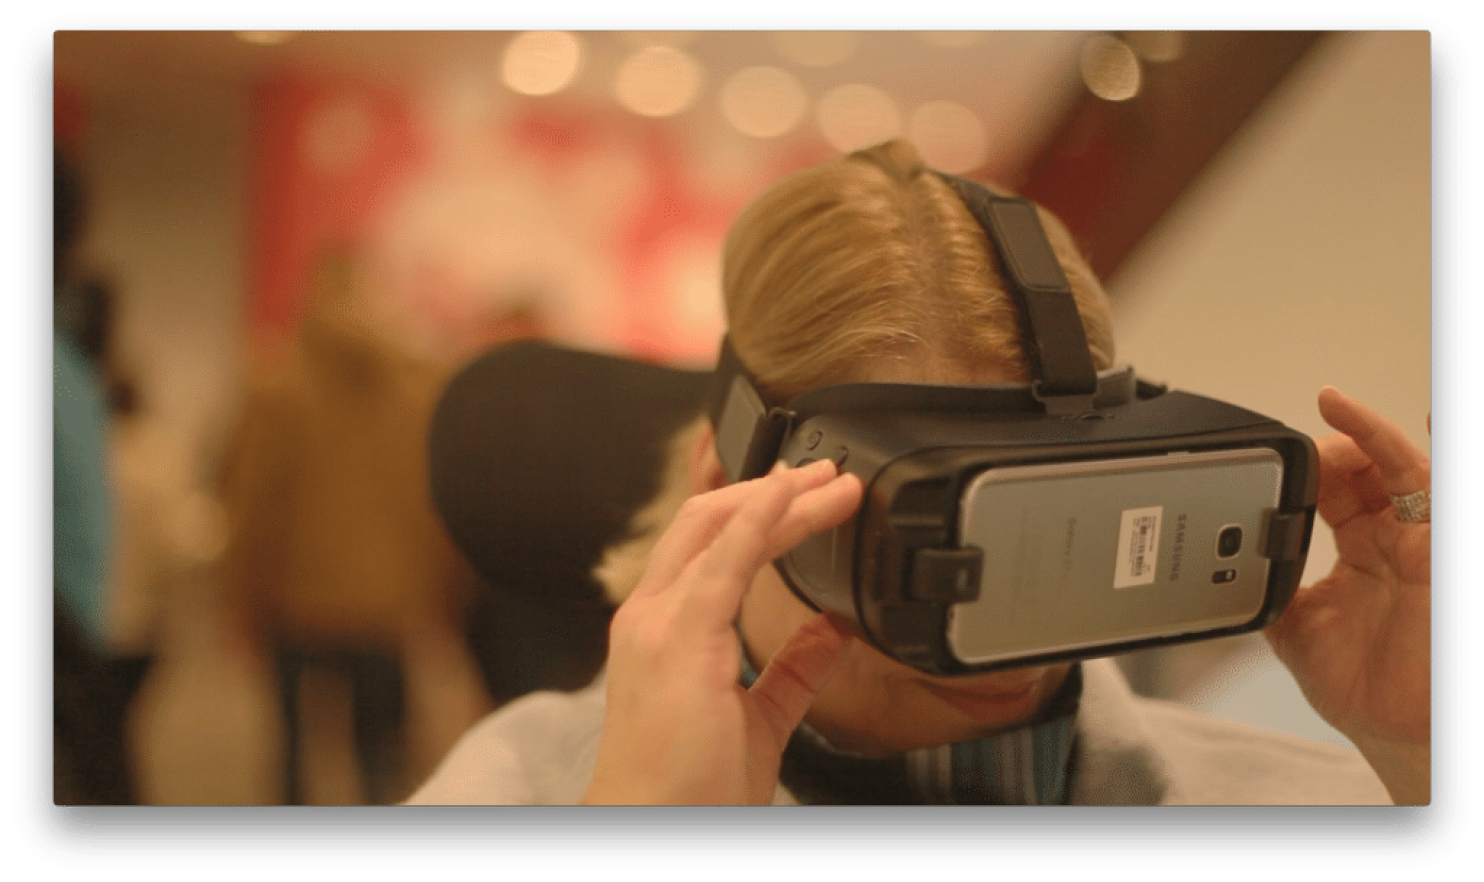 Color photo of woman using virtual headset smiling.